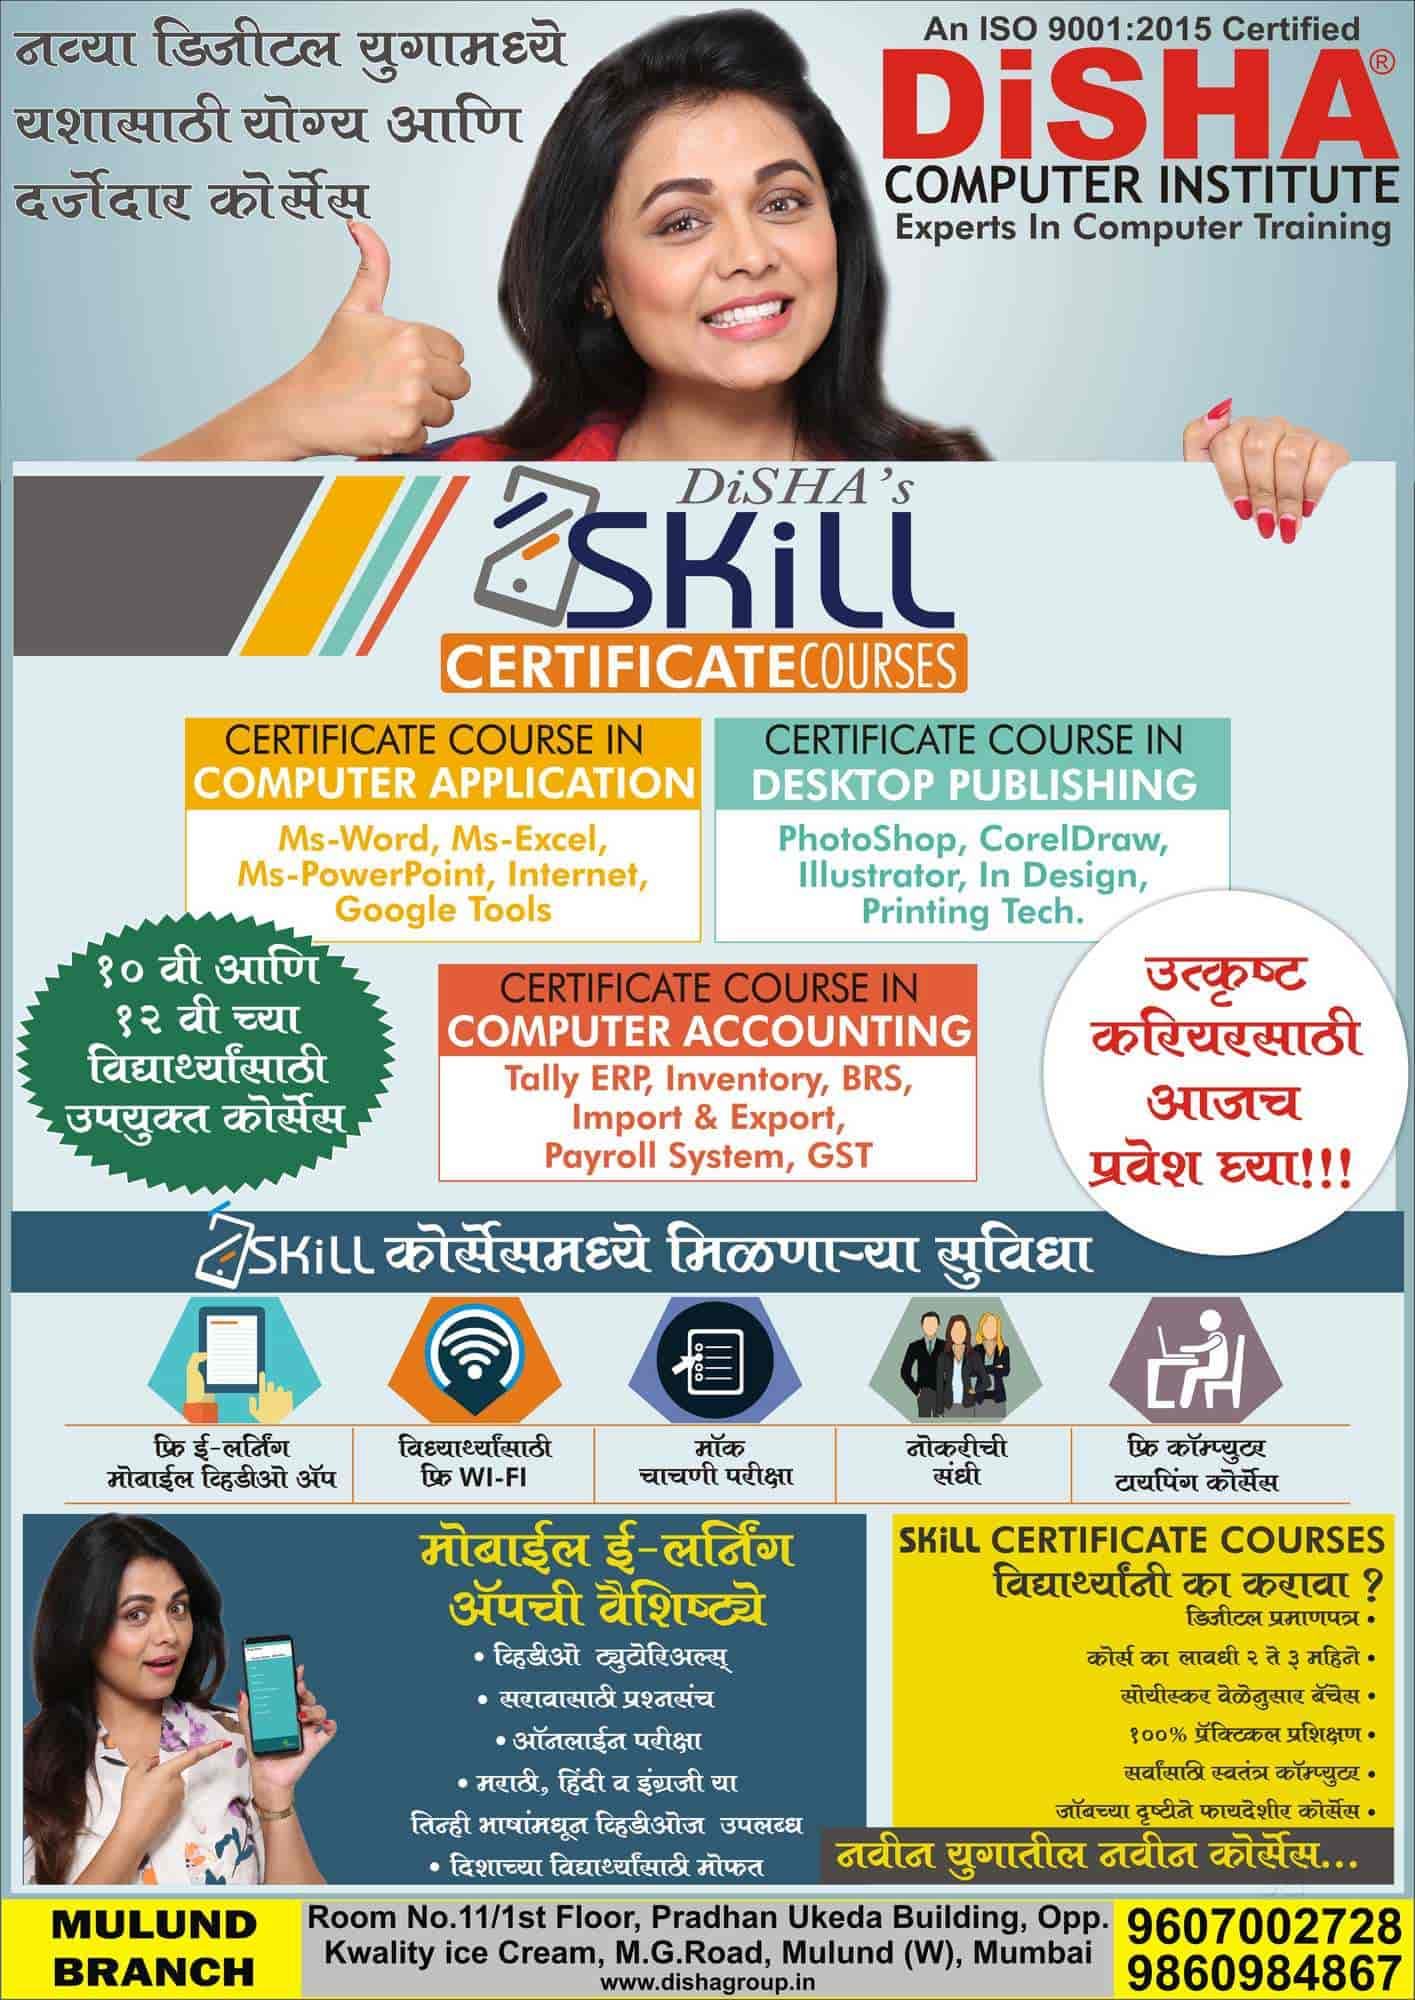 Disha Computer Institute, Mulund West - Computer Training Institutes